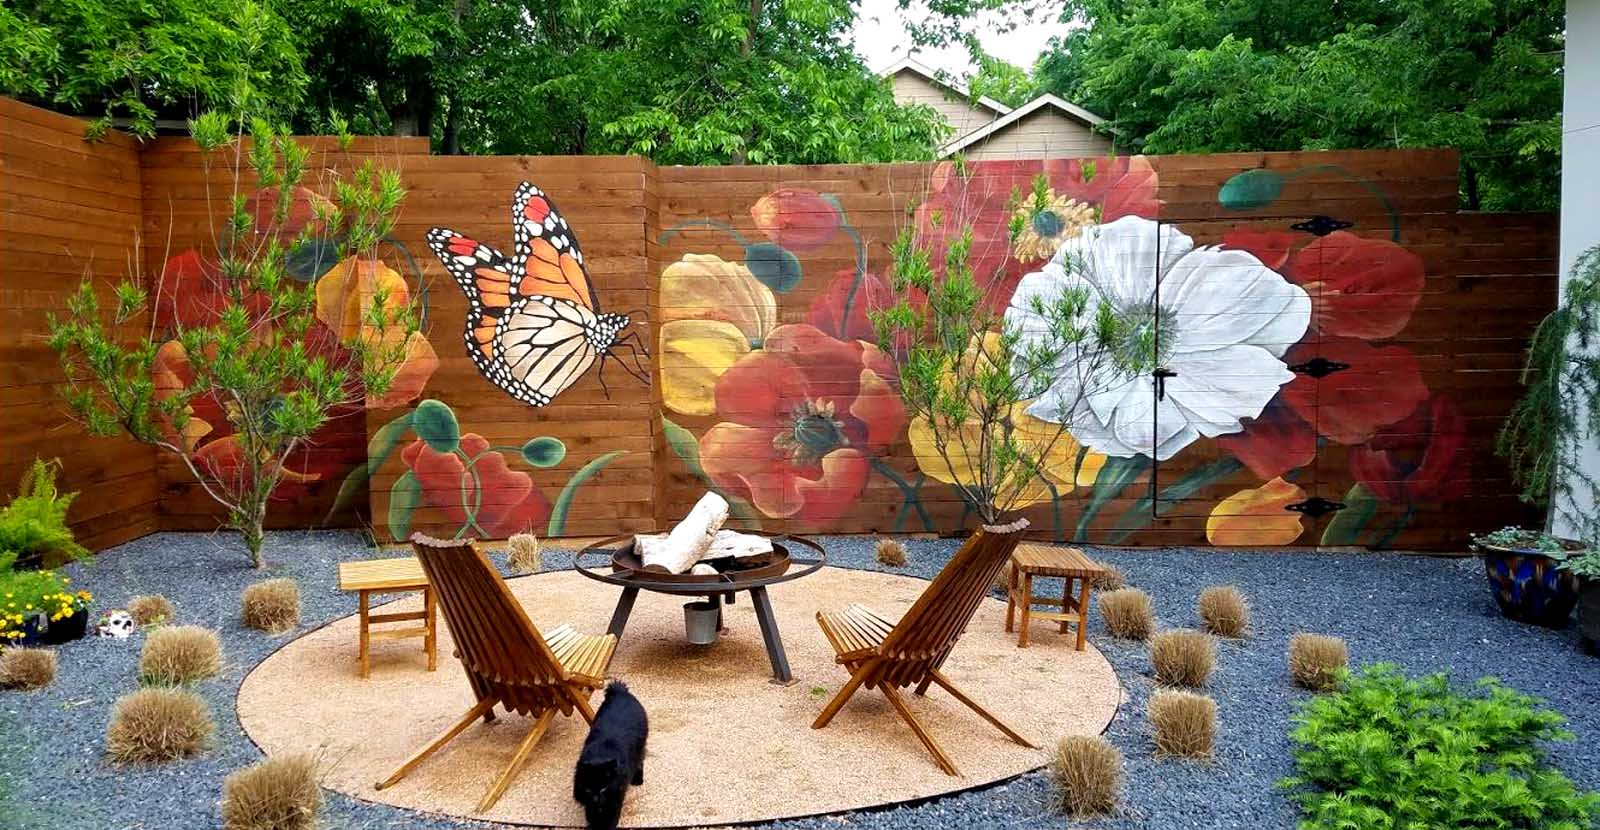 Spring Butterfly Fence Mural  - 10' x 30' Dallas Texas